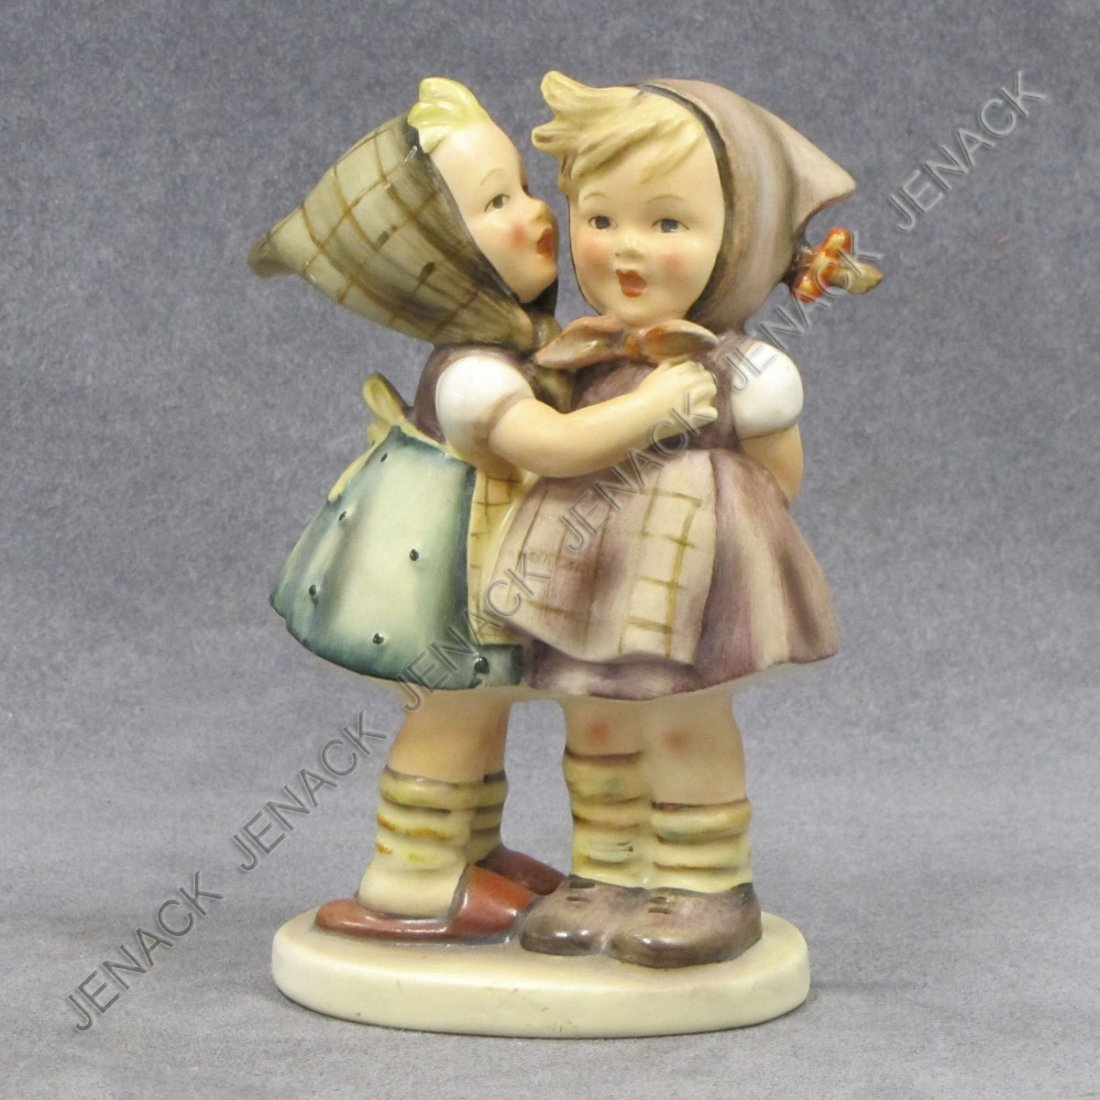 5: HUMMEL PORCELAIN FIGURE, TELLING HER SECRET #196/0